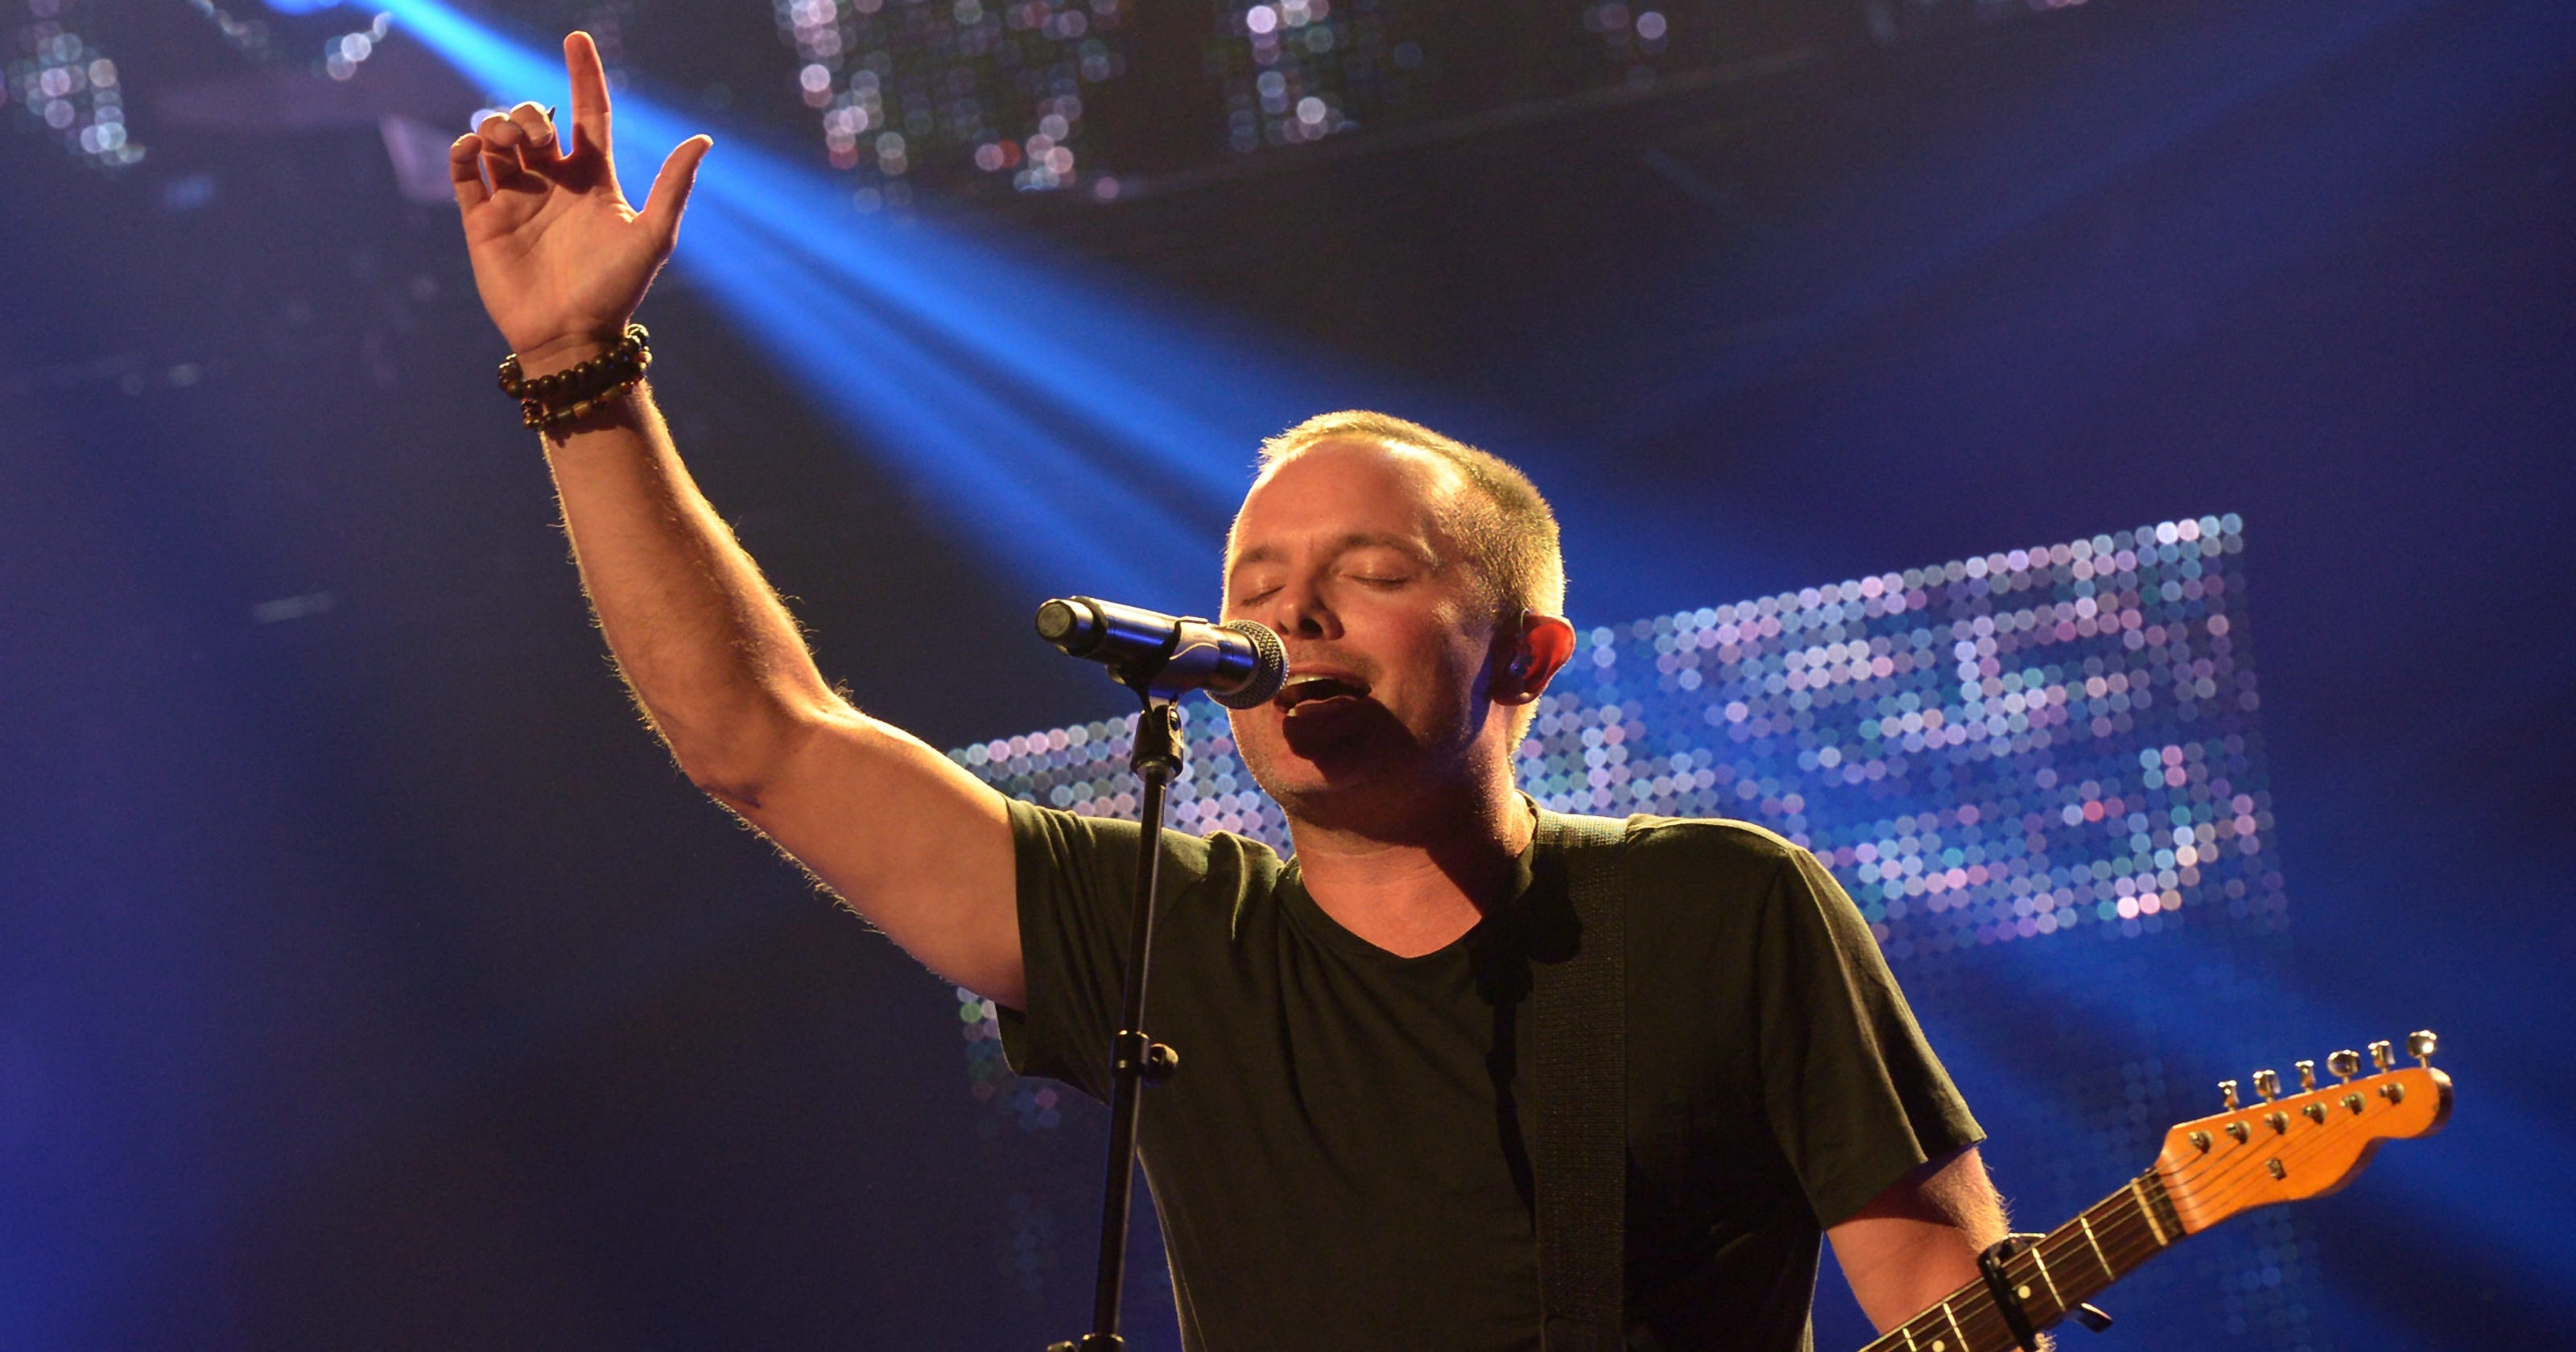 5 Christian rock stars coming to Bankers Life Fieldhouse